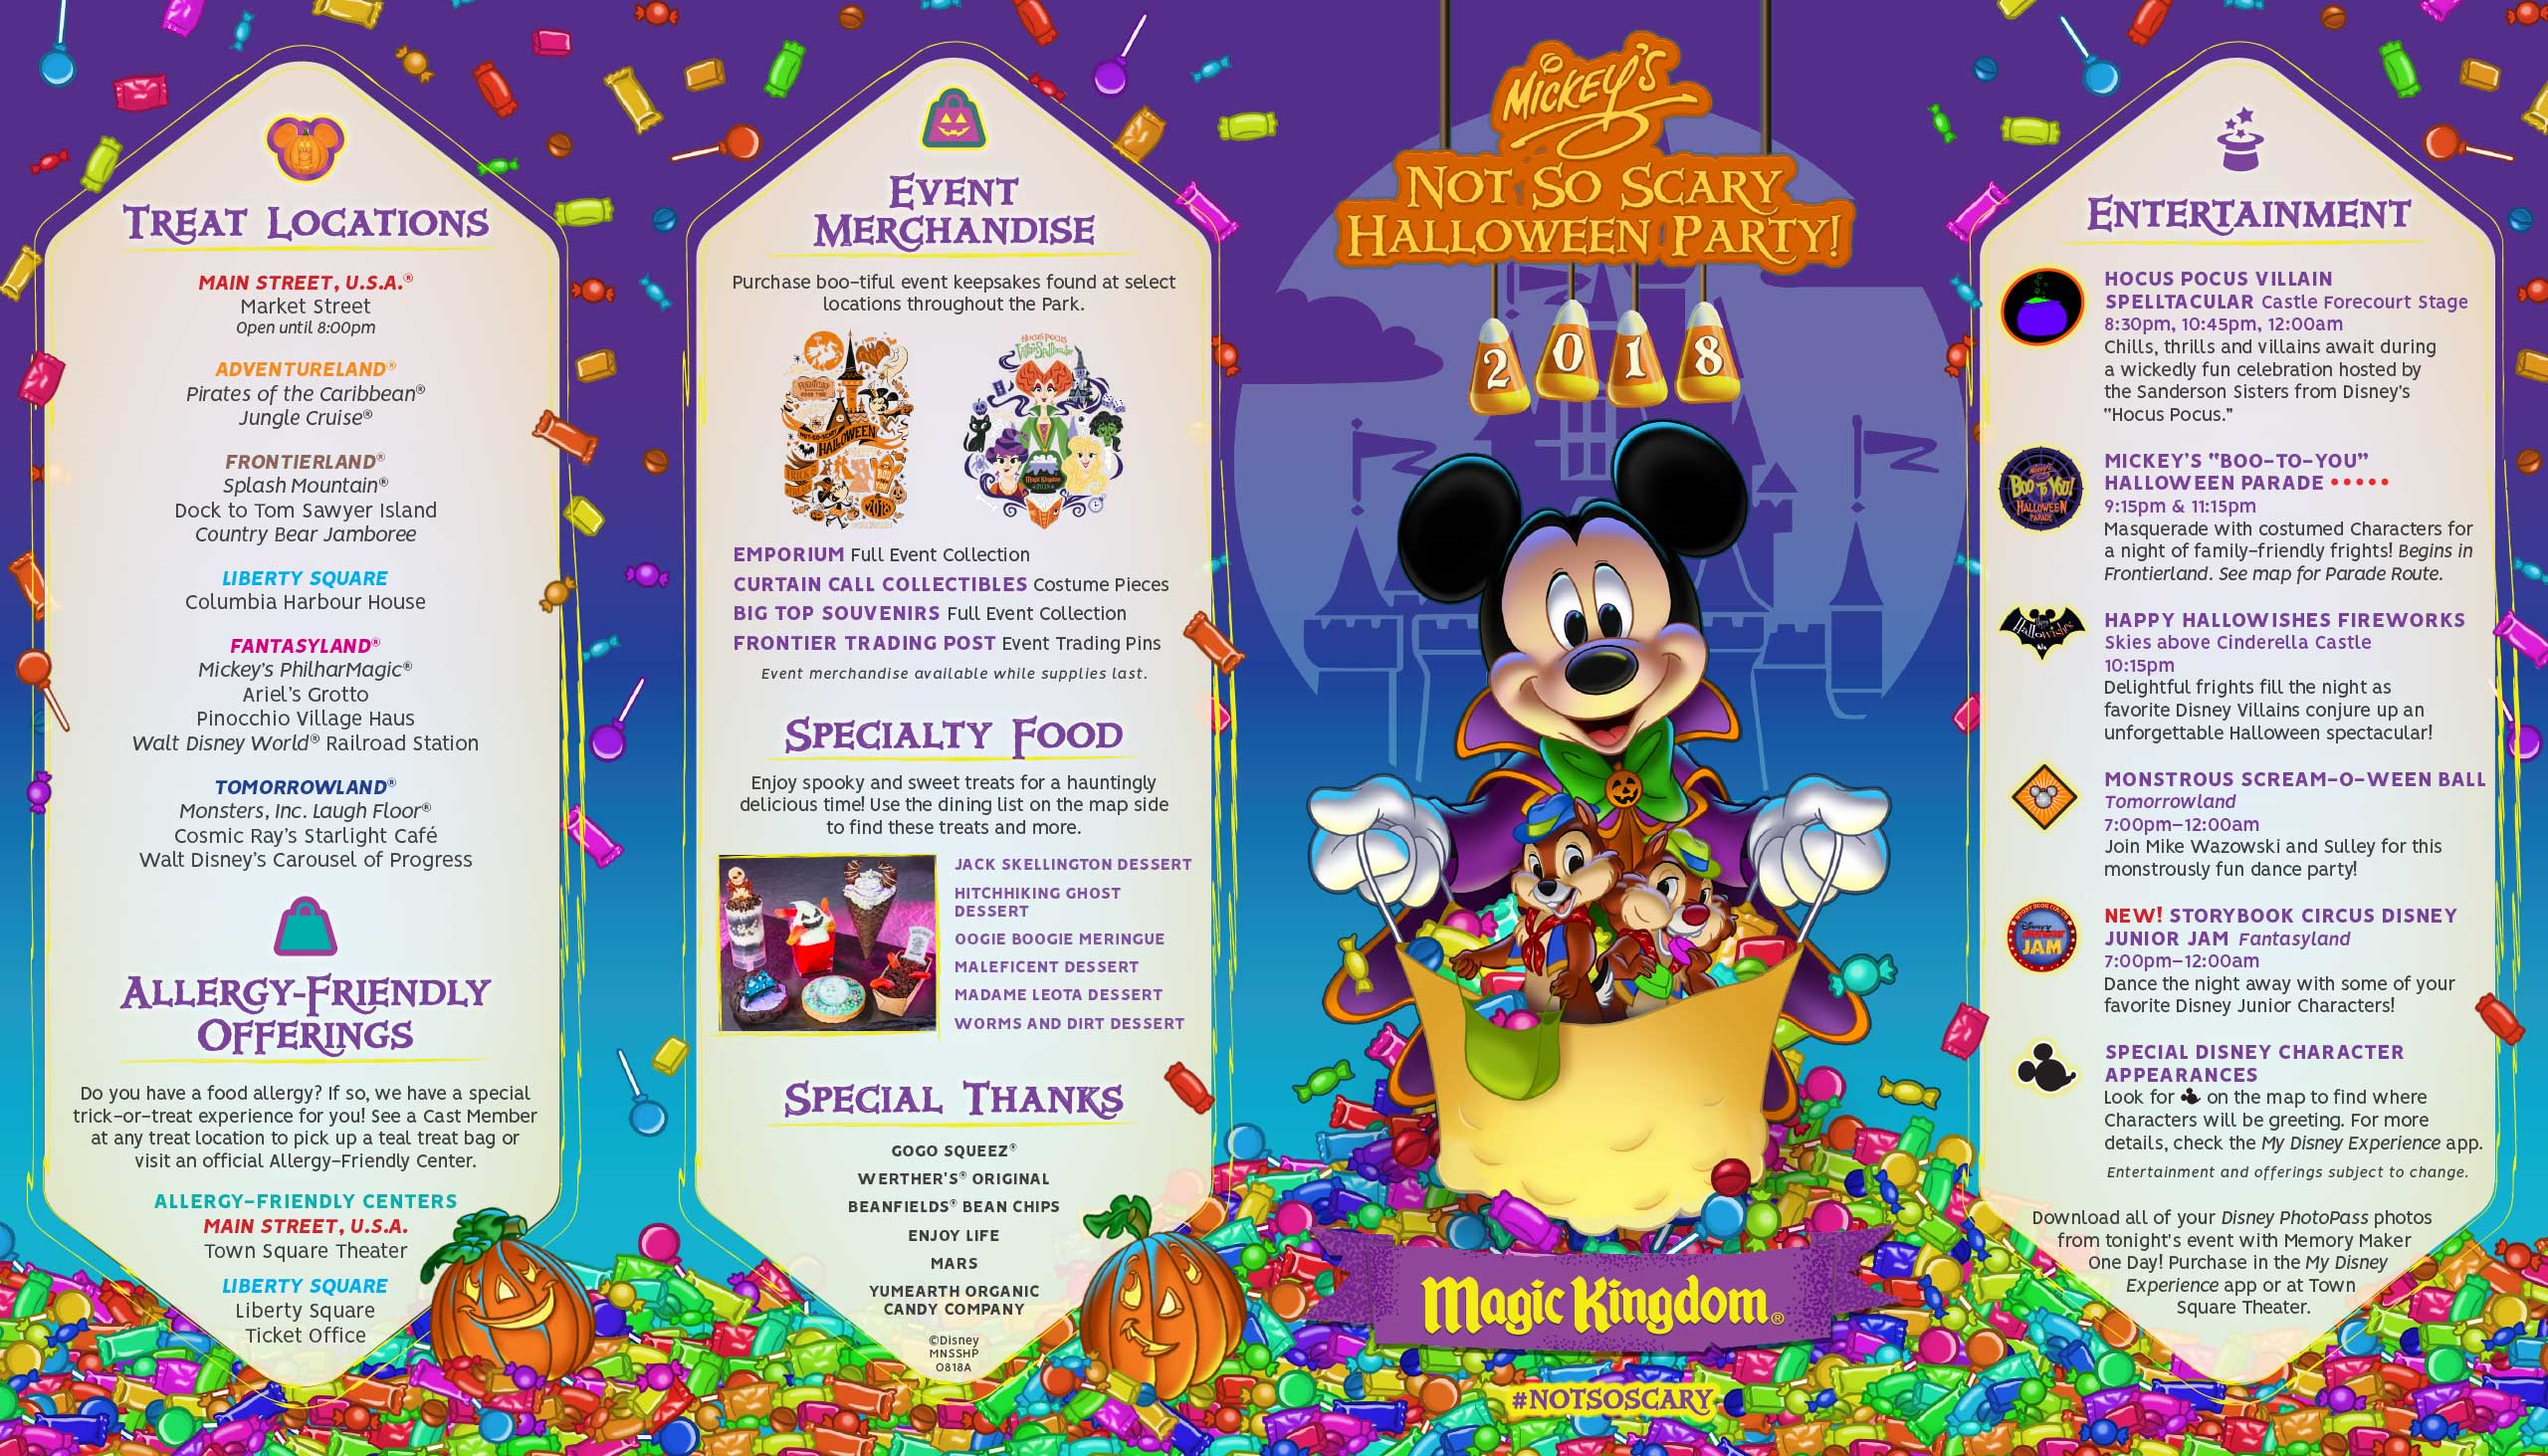 Mickey's Not-So-Scary Halloween Party 2018 guide map - Photo 1 of 2